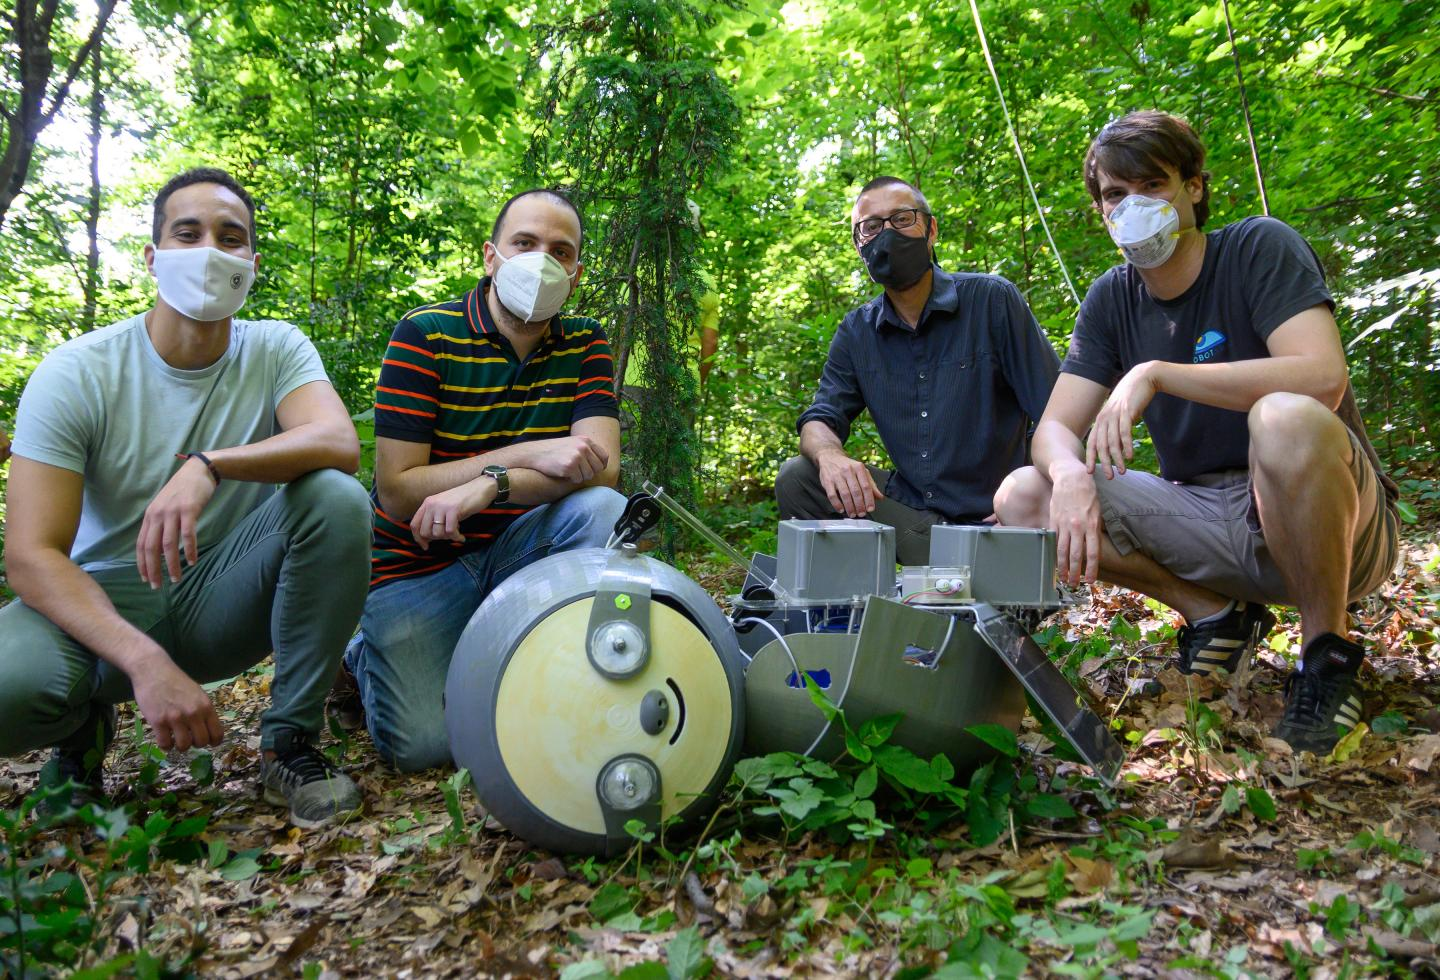 SlothBot research team. Photo via Georgia Institute of Technology.